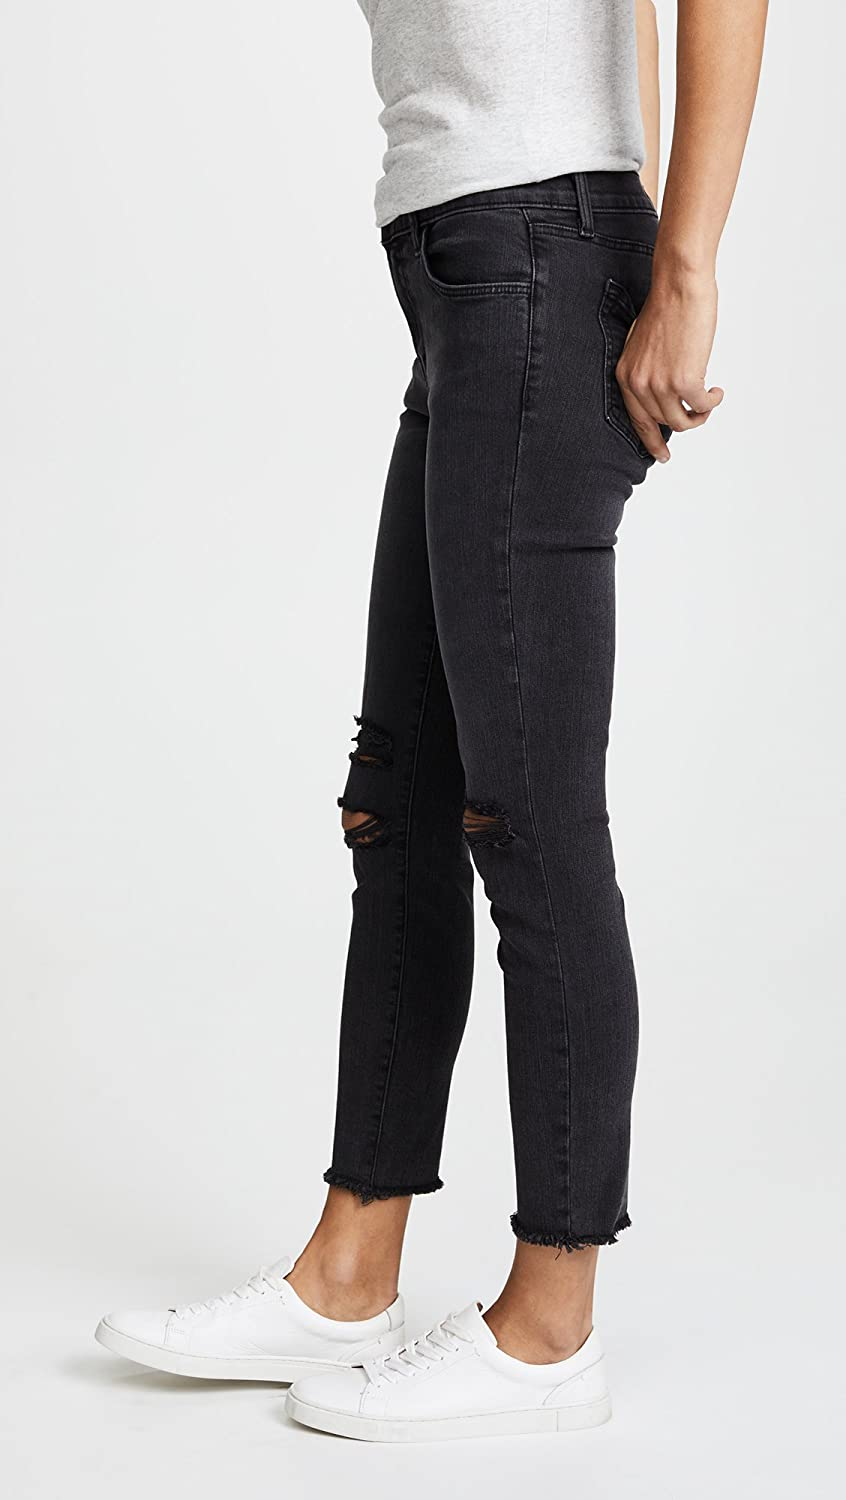 J Brand Womens Photo Ready Cropped Mid Rise Skinny Jeans